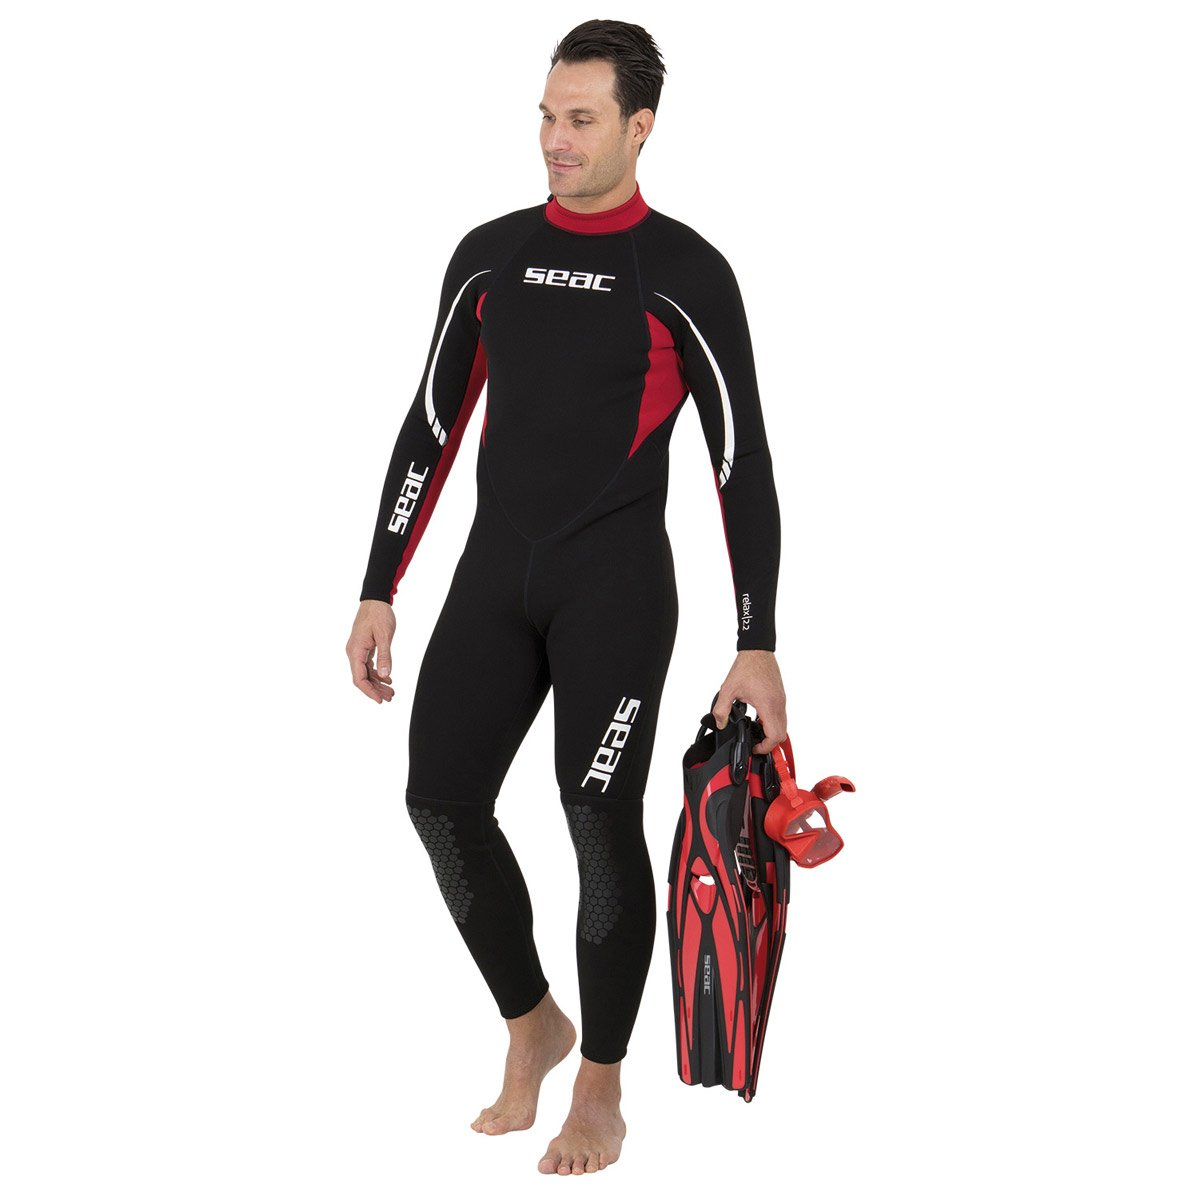 Relax Man Wetsuit